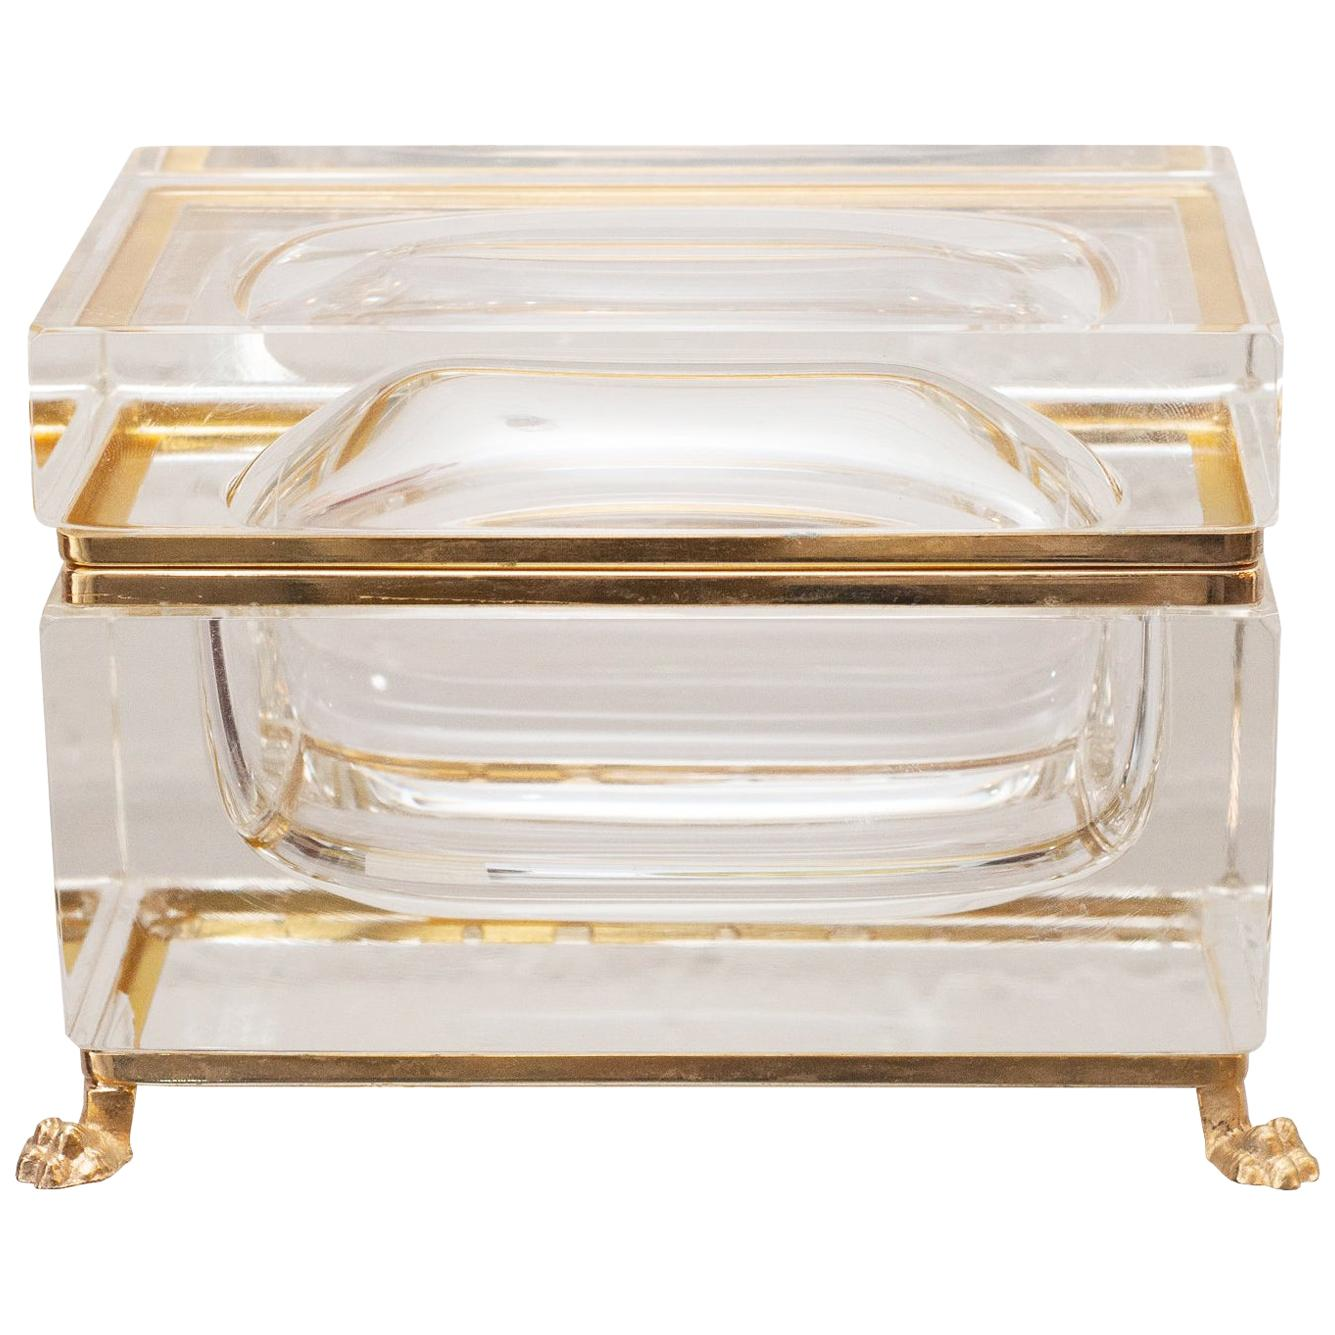 Antique Large Crystal Box or Casket with Bronze Mount